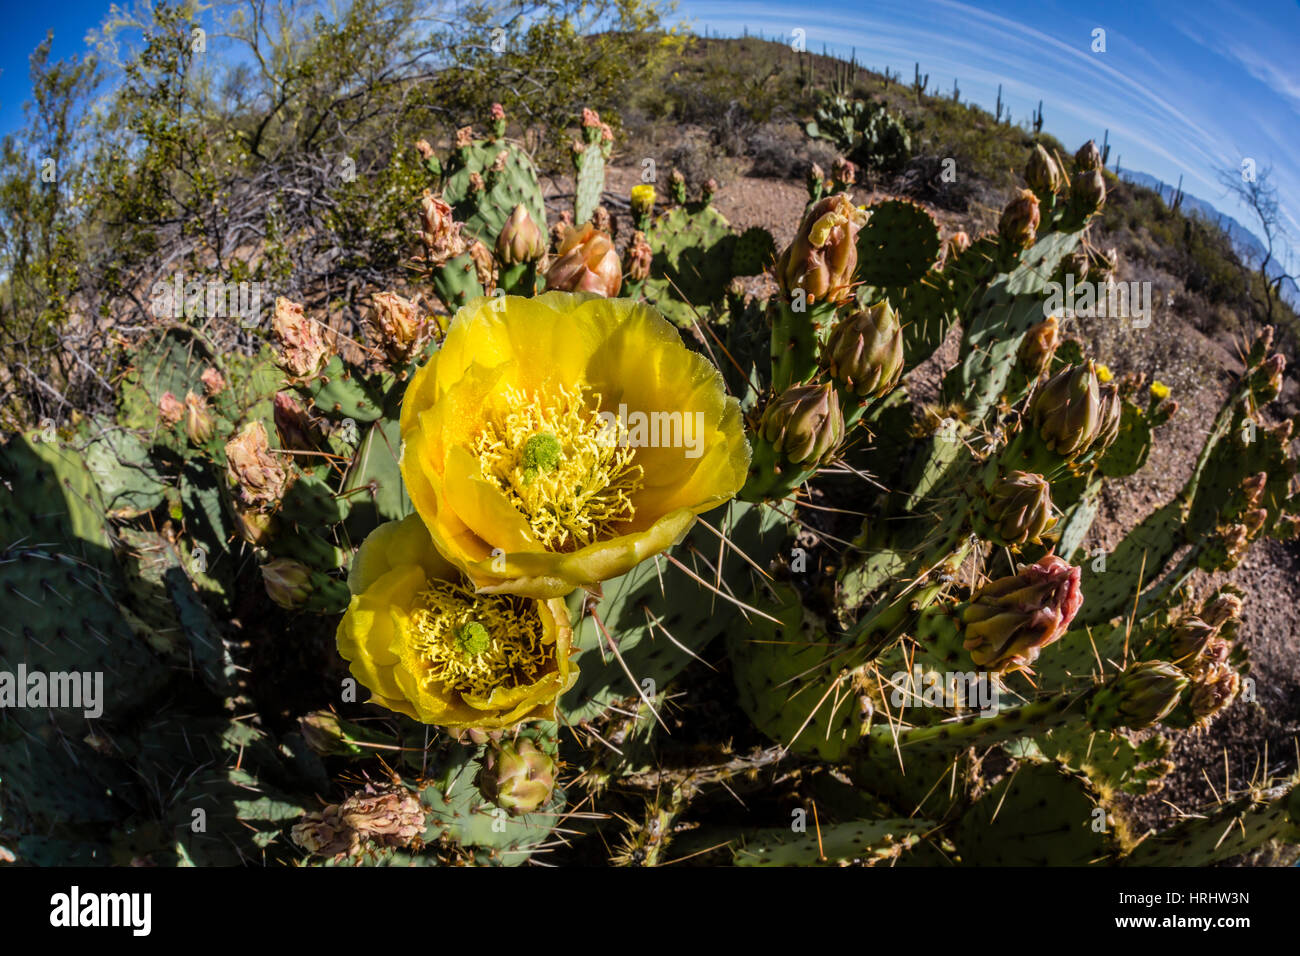 Yellow flowering cactus stock photos yellow flowering cactus stock flowering prickly pear cactus in the sweetwater preserve tucson arizona united states mightylinksfo